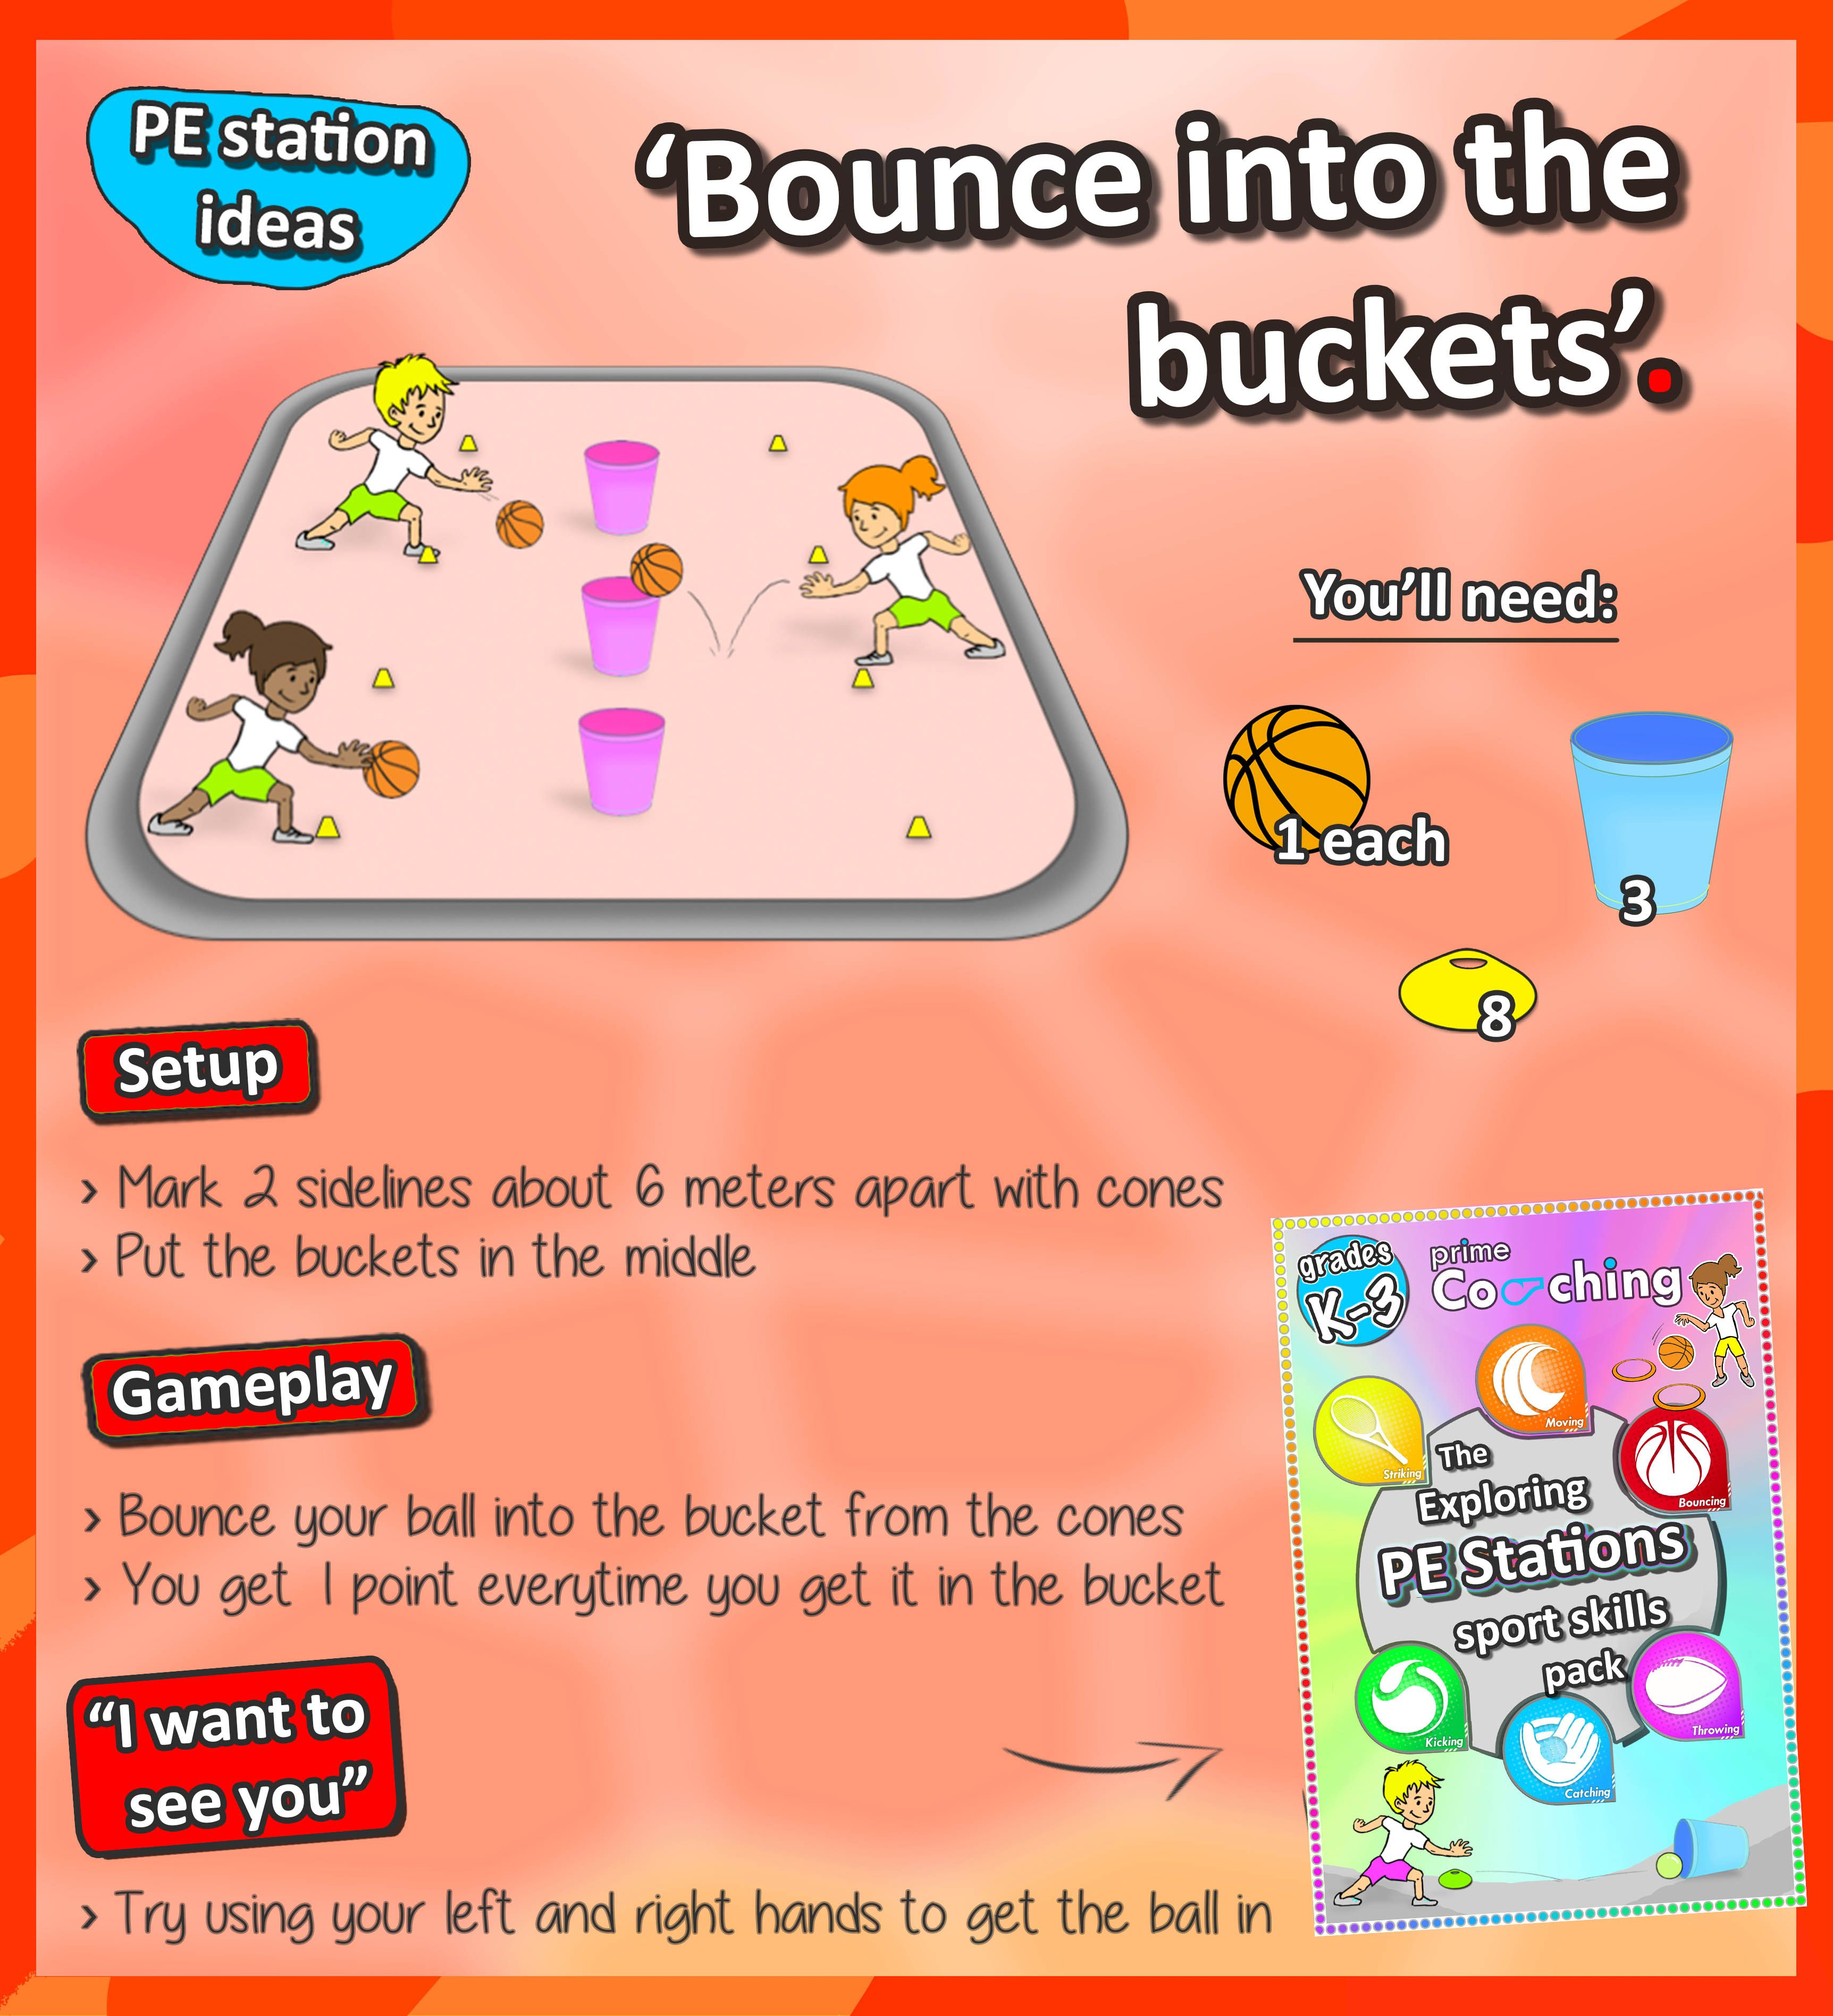 Exploring Pe Stations 6 Awesome Station Activities For You To Basic Skills In Relay Race Basketball Bouncing Get Your Kids Practicing Their Ball Handling And Accuracy With This Simple Check Out More Sport Here